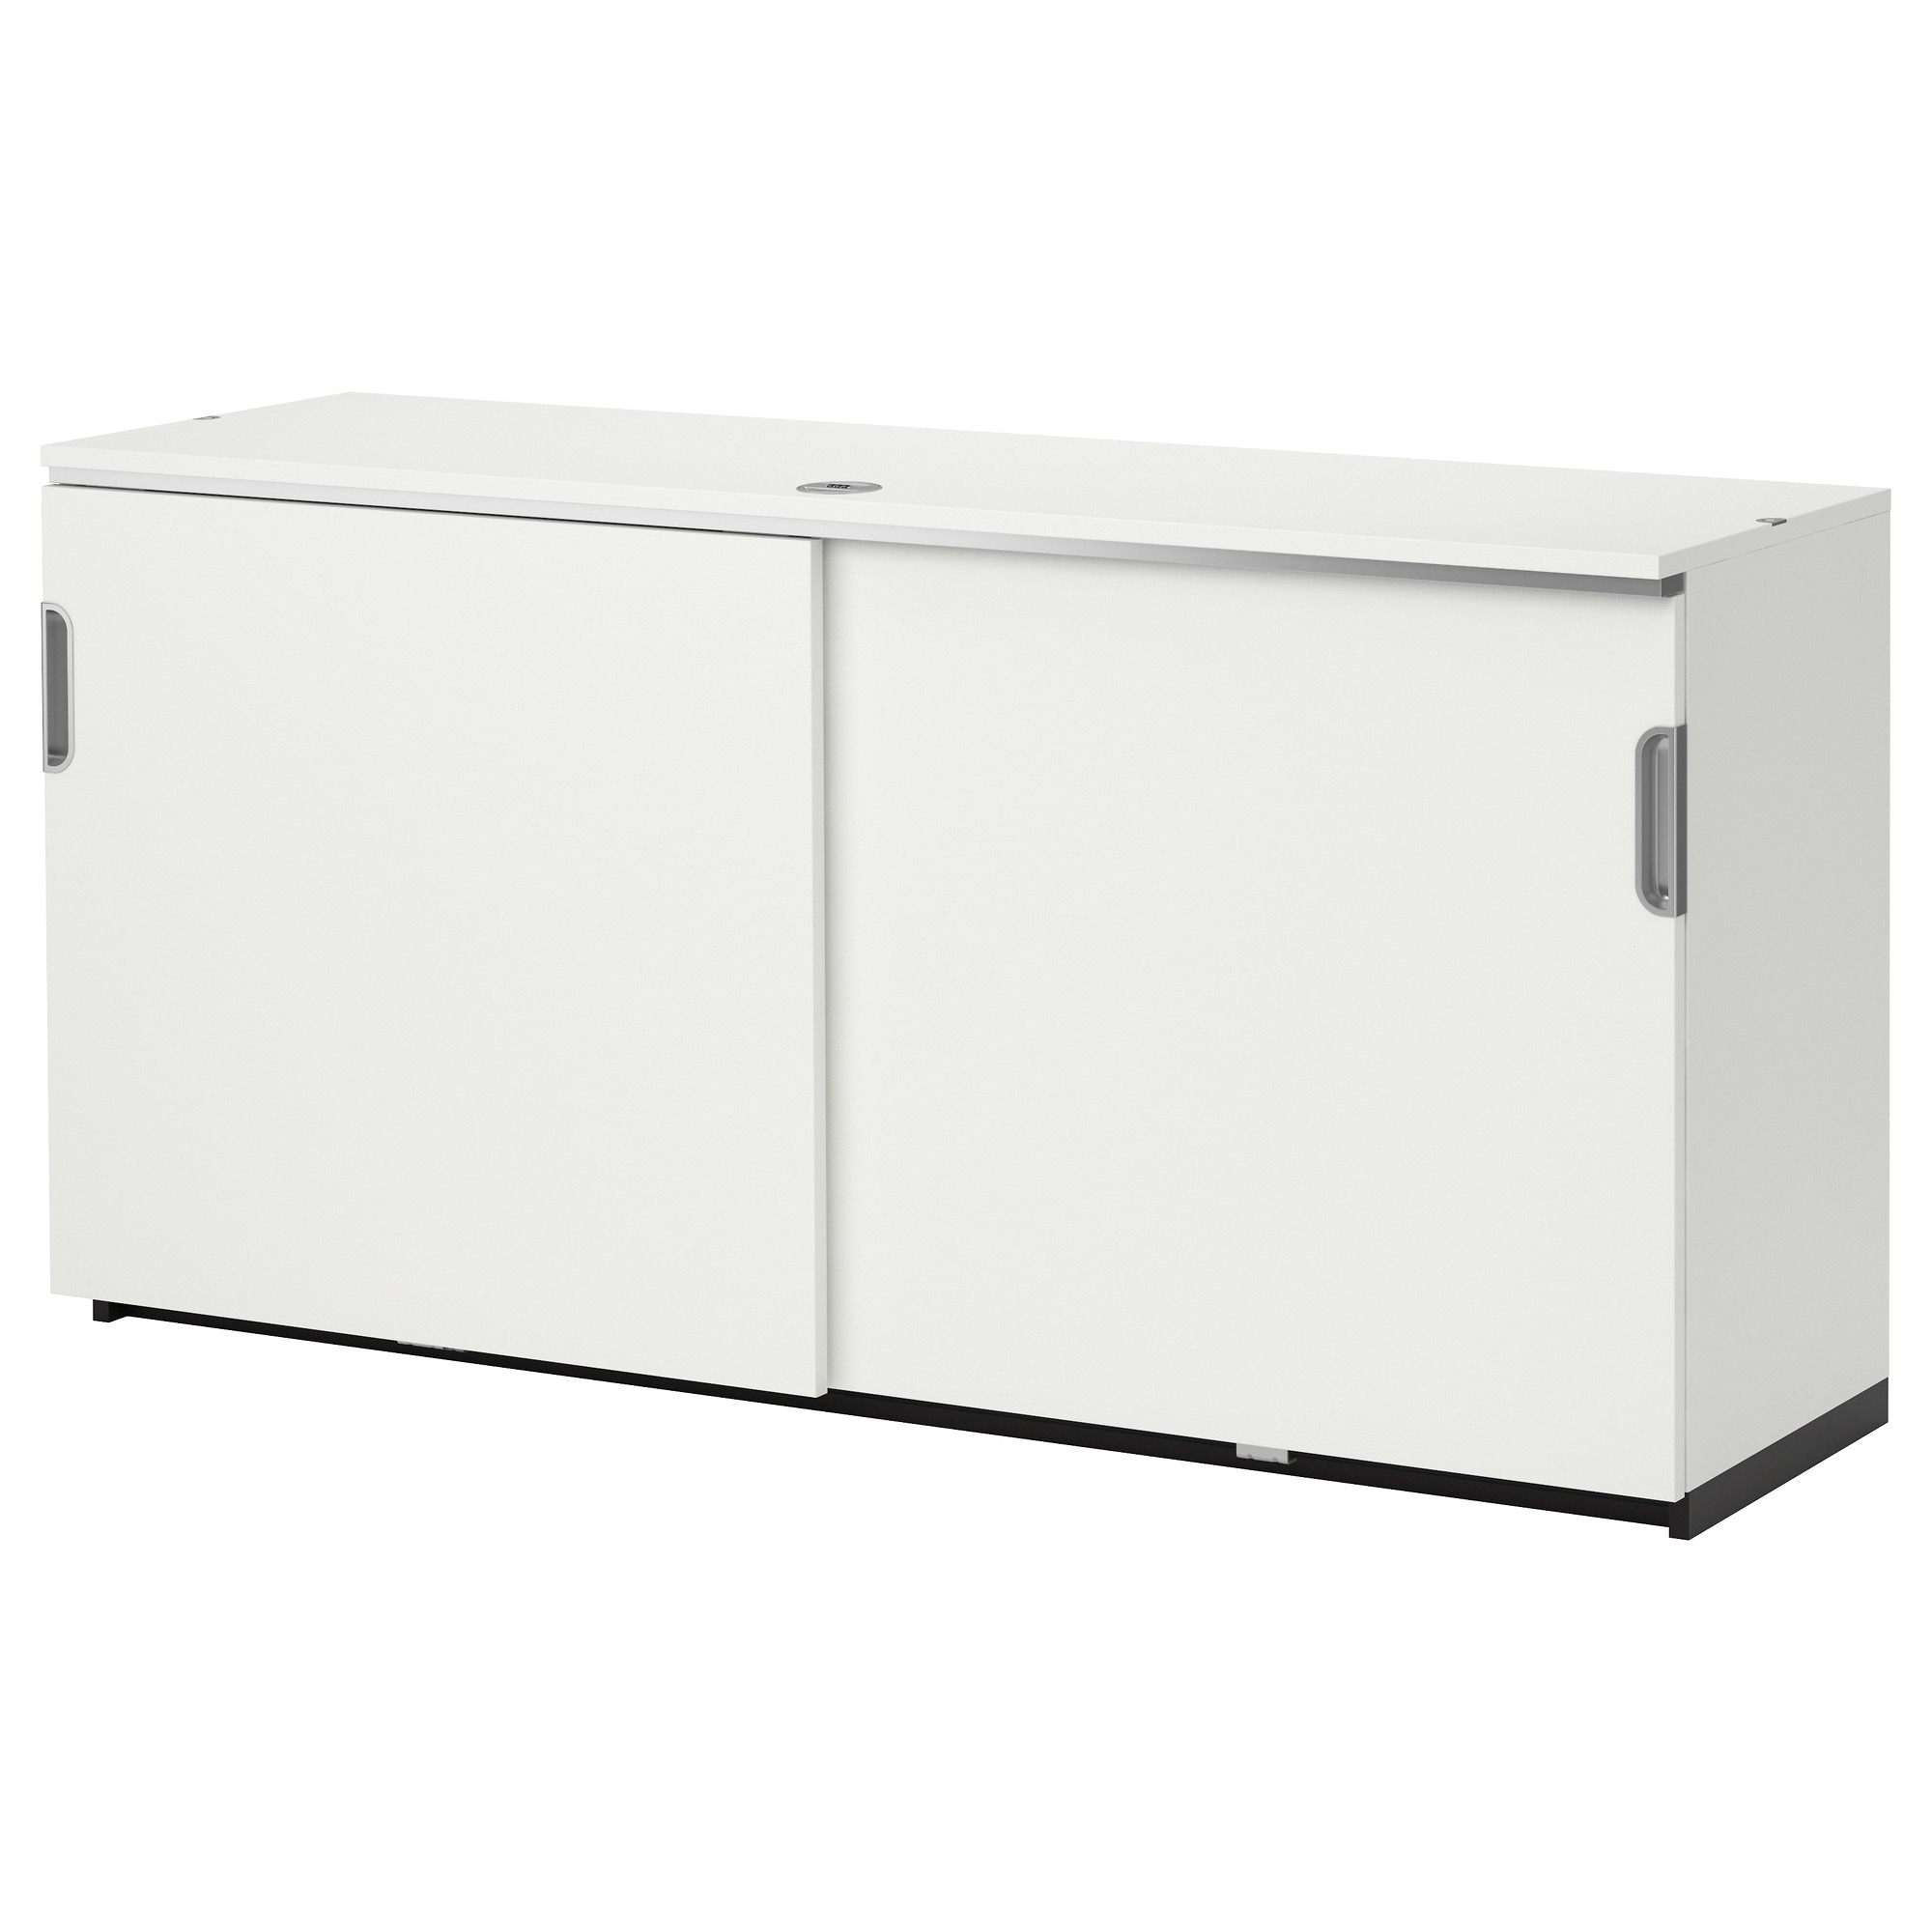 Horizontal Filing Cabinet Filing Cabinets Filing Cabinets For Home Office Ikea